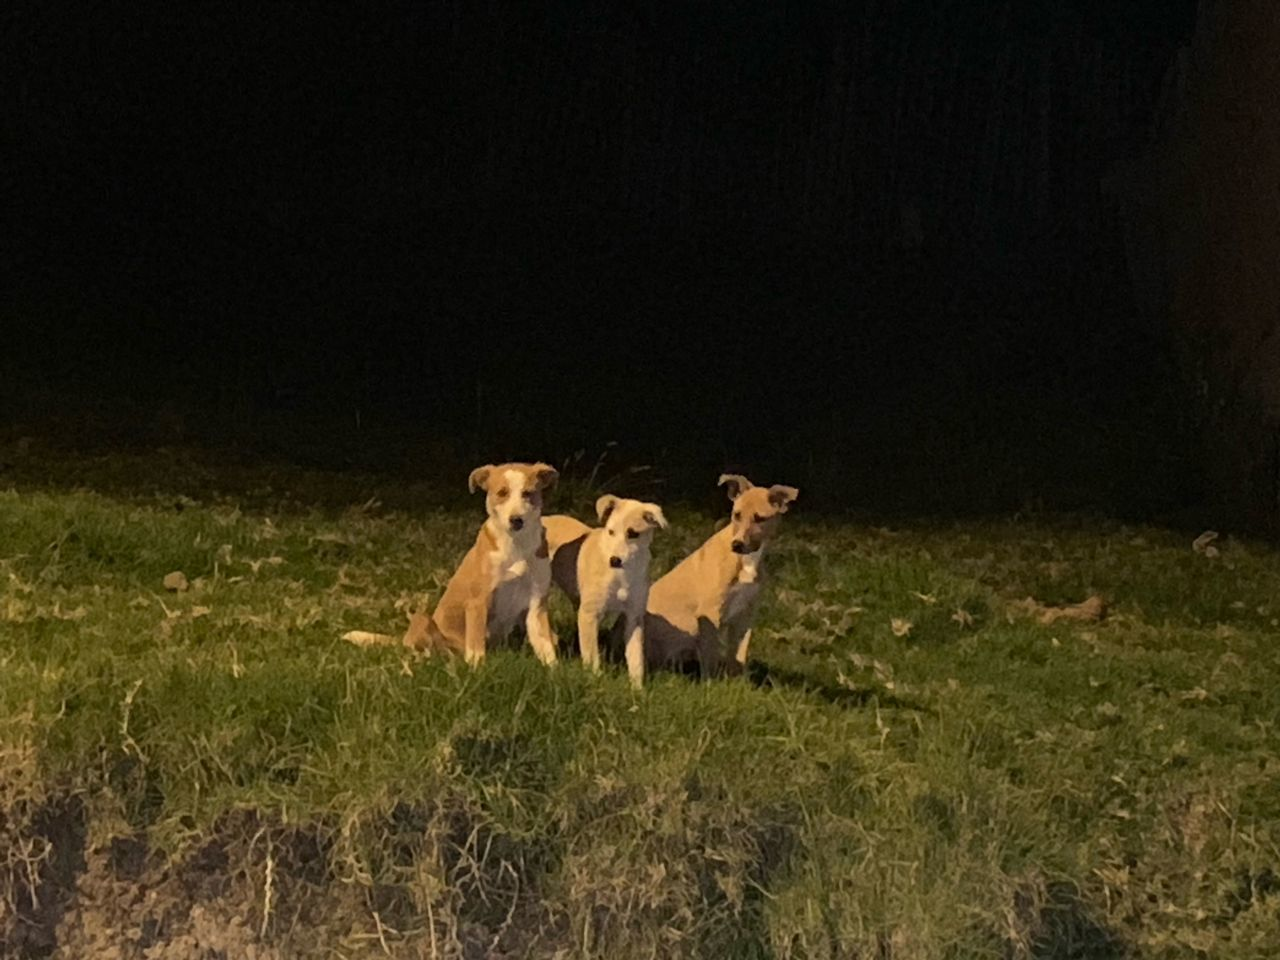 mammal, animal, animal themes, group of animals, grass, pets, domestic animals, domestic, vertebrate, plant, field, land, no people, night, two animals, nature, young animal, canine, dog, copy space, animal family, herbivorous